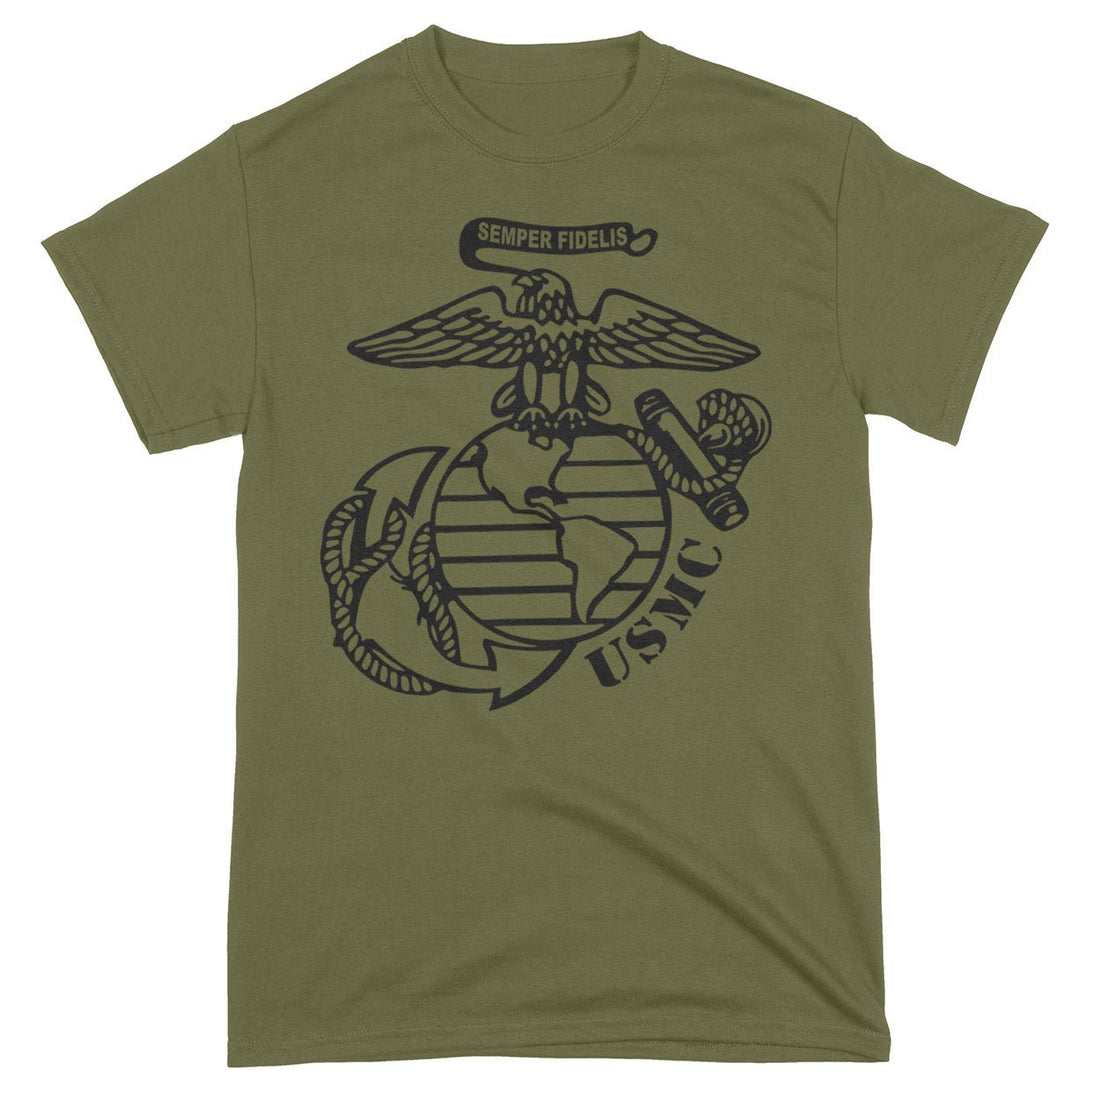 Front view of the military green USMC T-shirt with the eagle, globe, and anchor logo front and center.